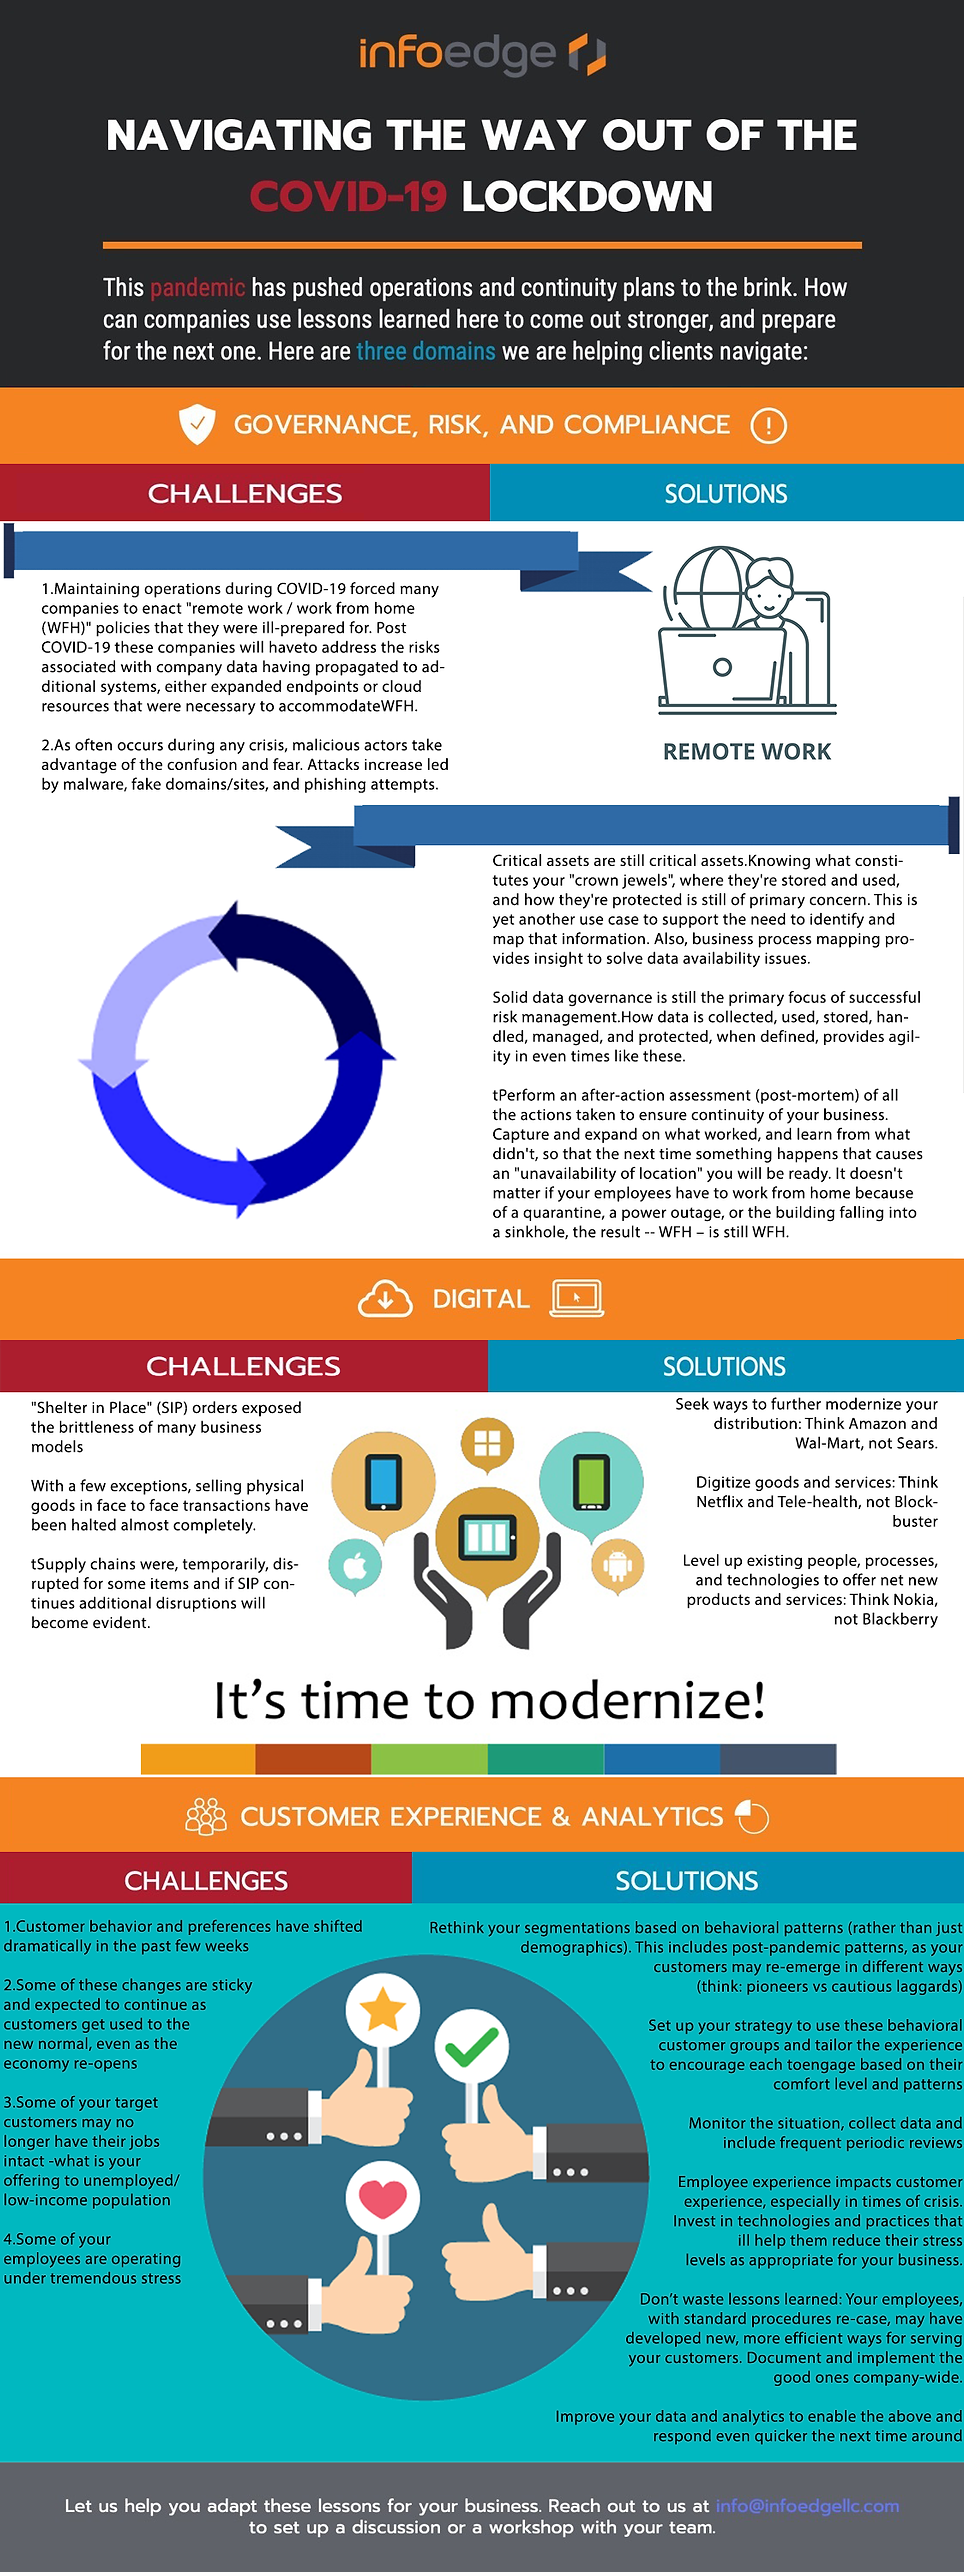 infographic breaking down ways to navigate COVID-19, infoedge